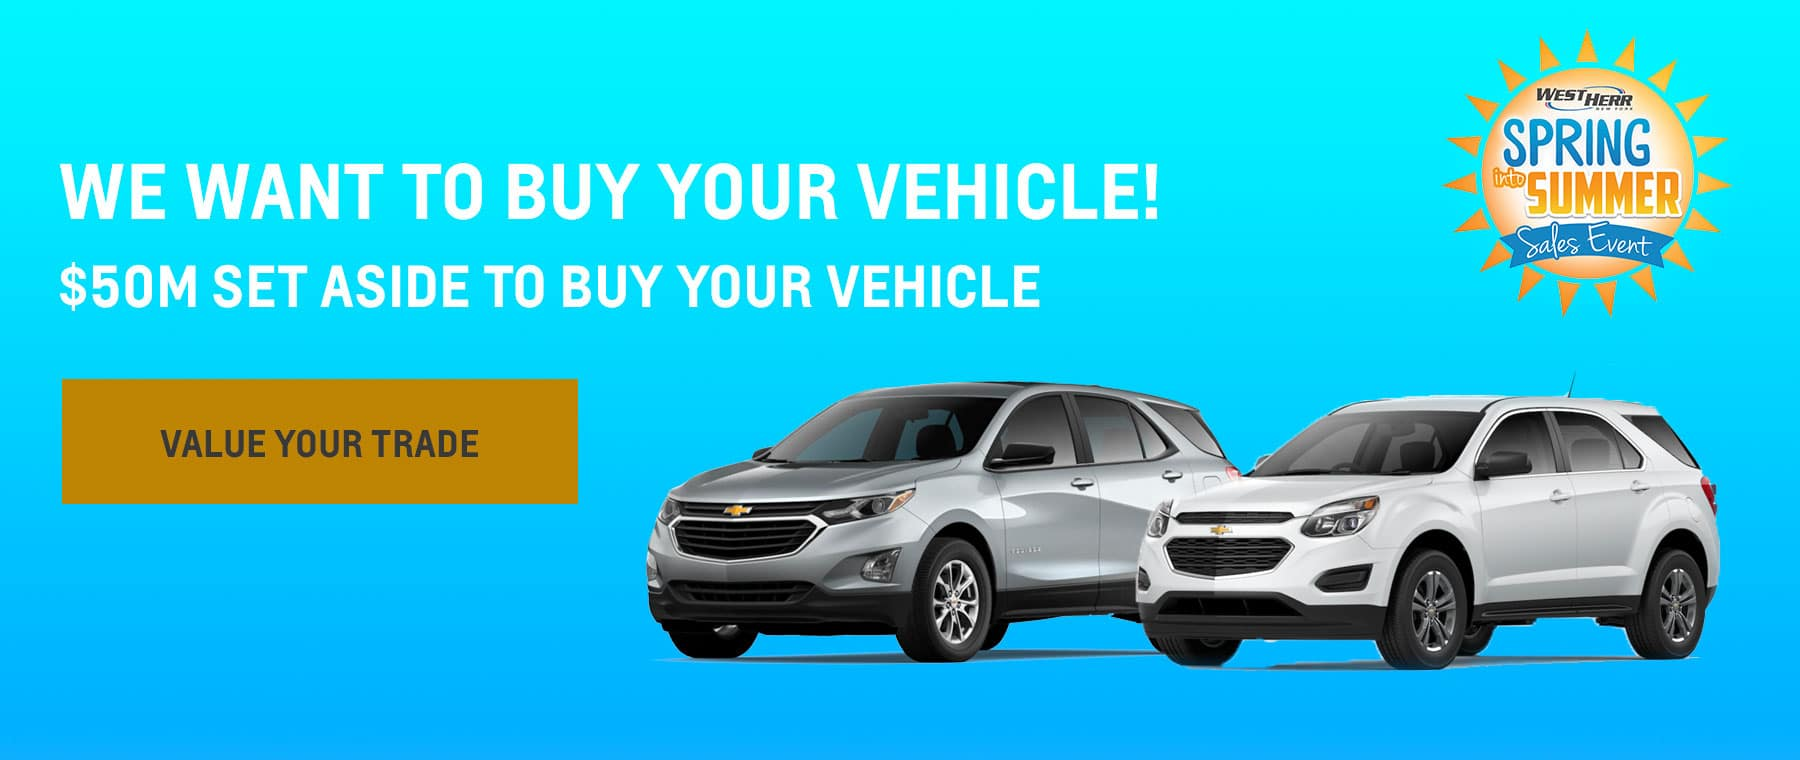 We Want to Buy Your Vehicle! Subtext: $50M set aside to buy your vehicle